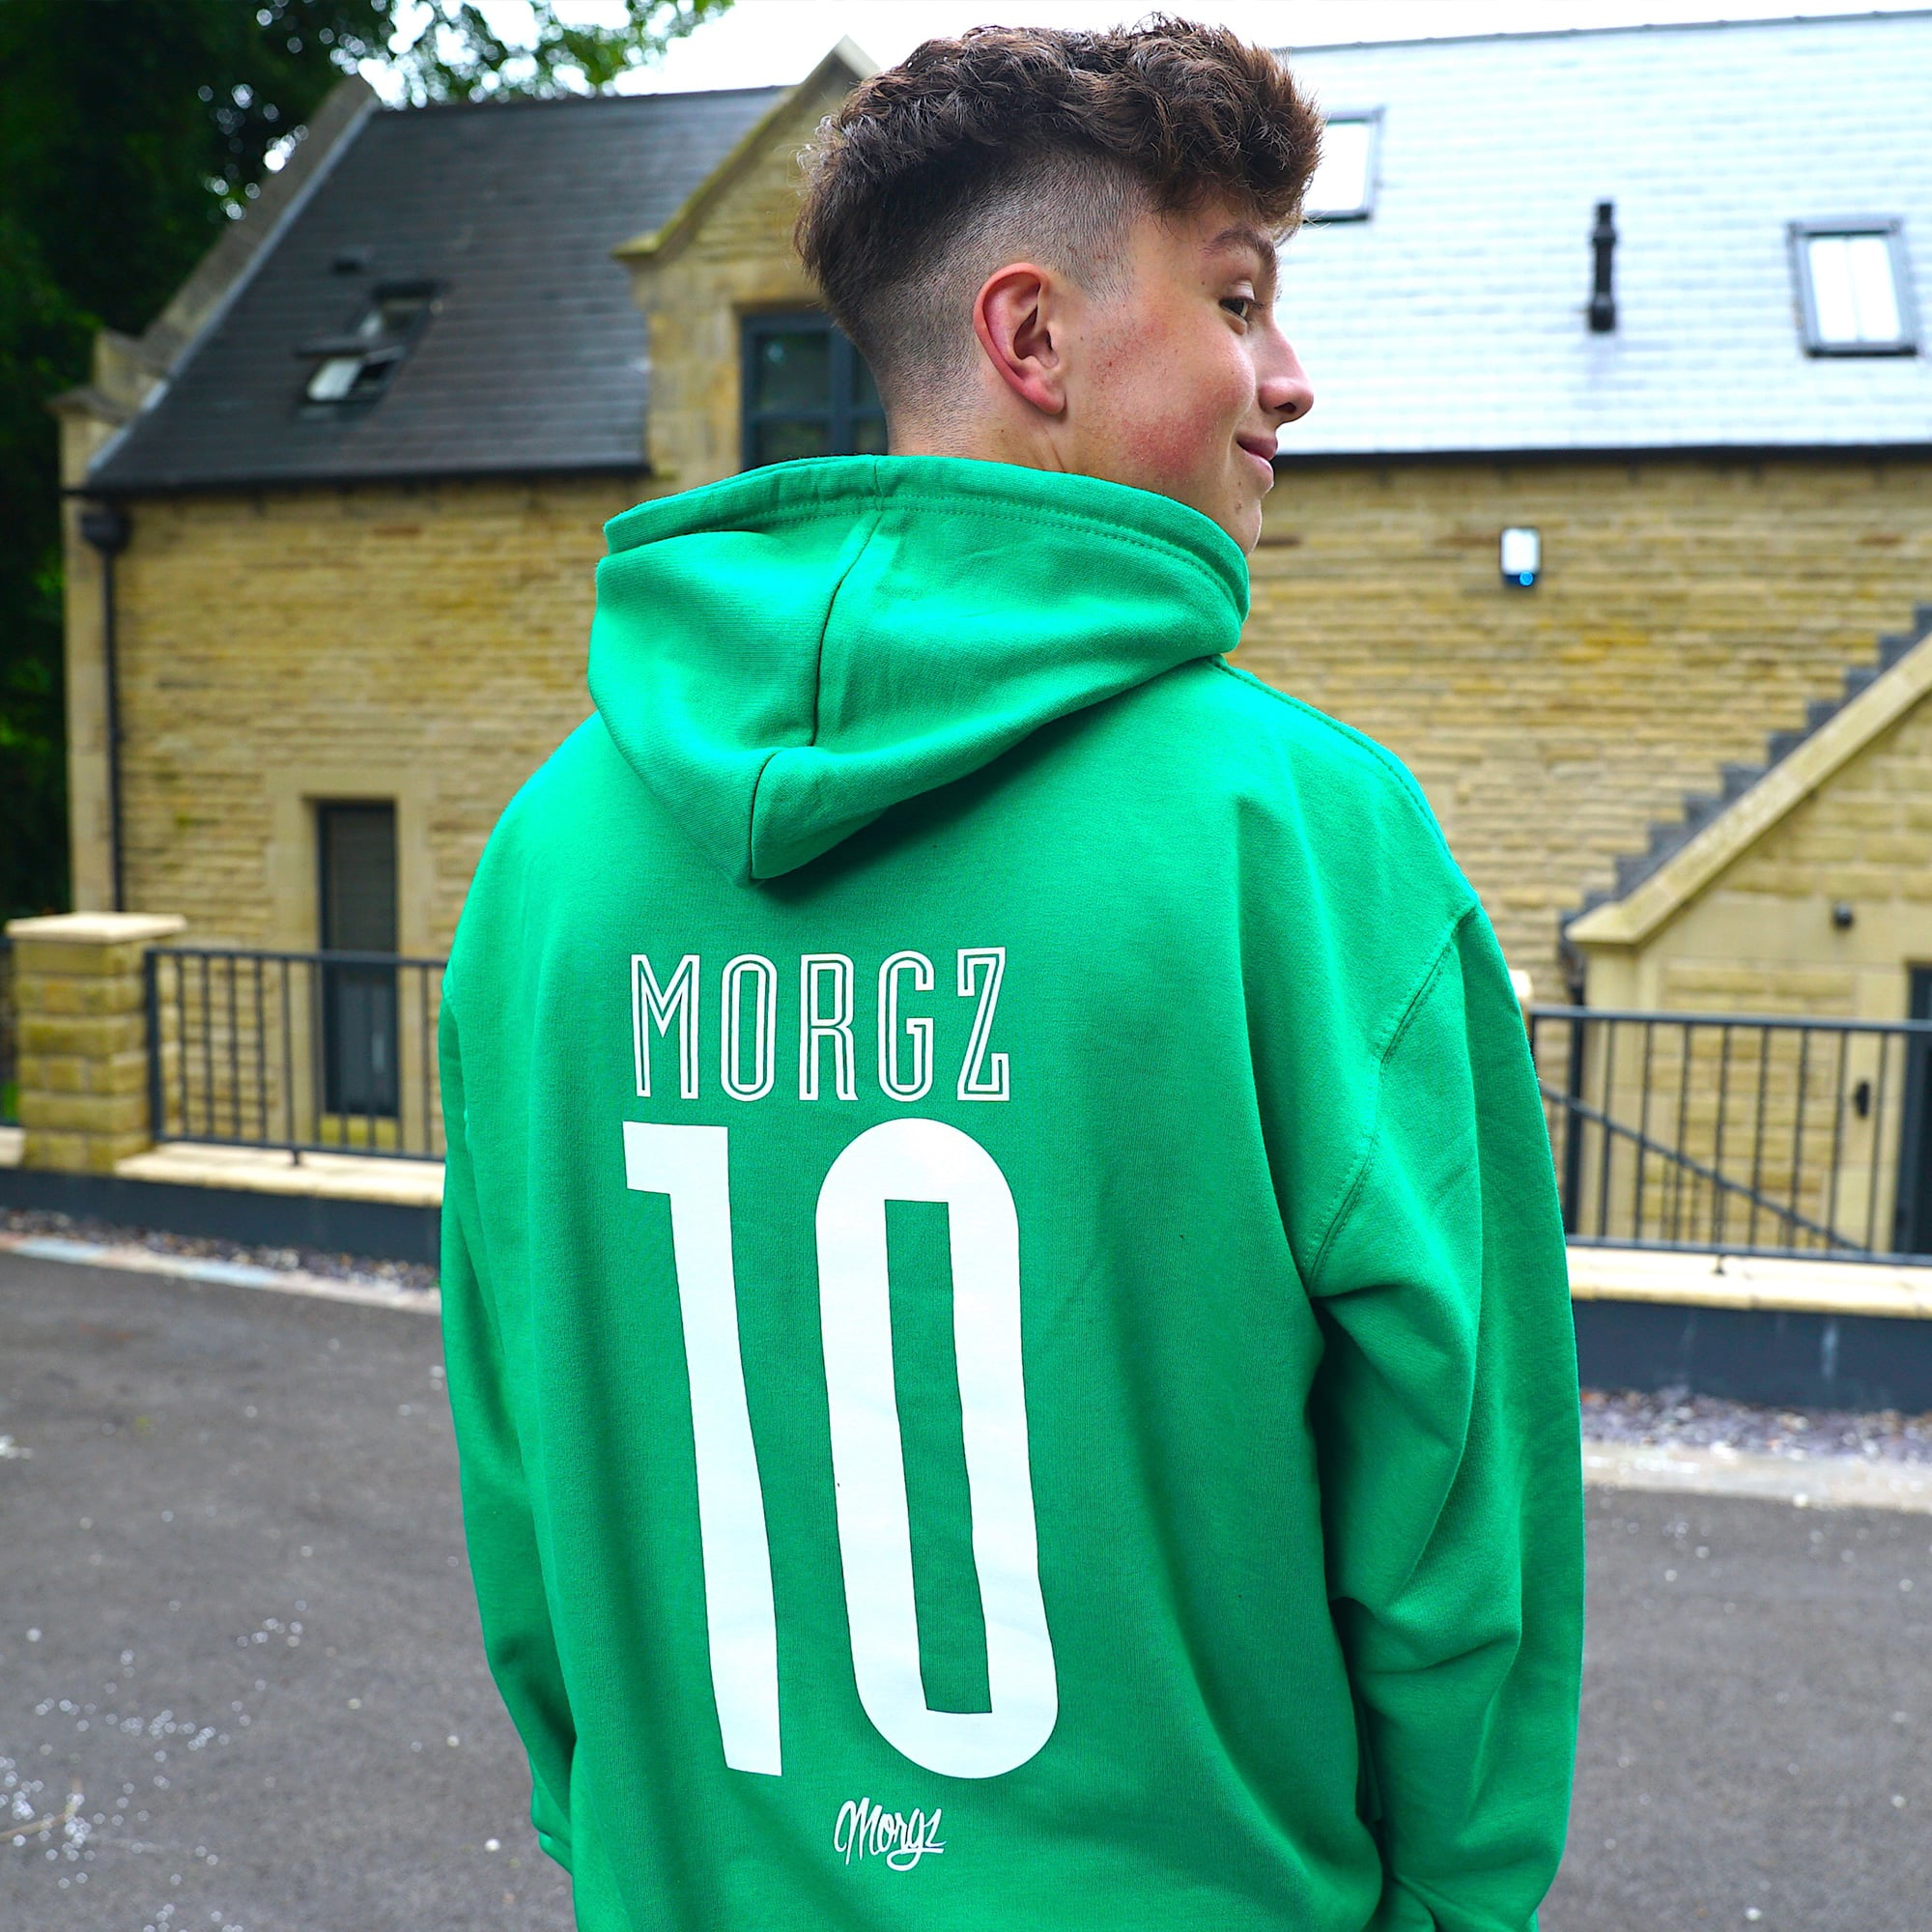 All Products – Morgz Merch